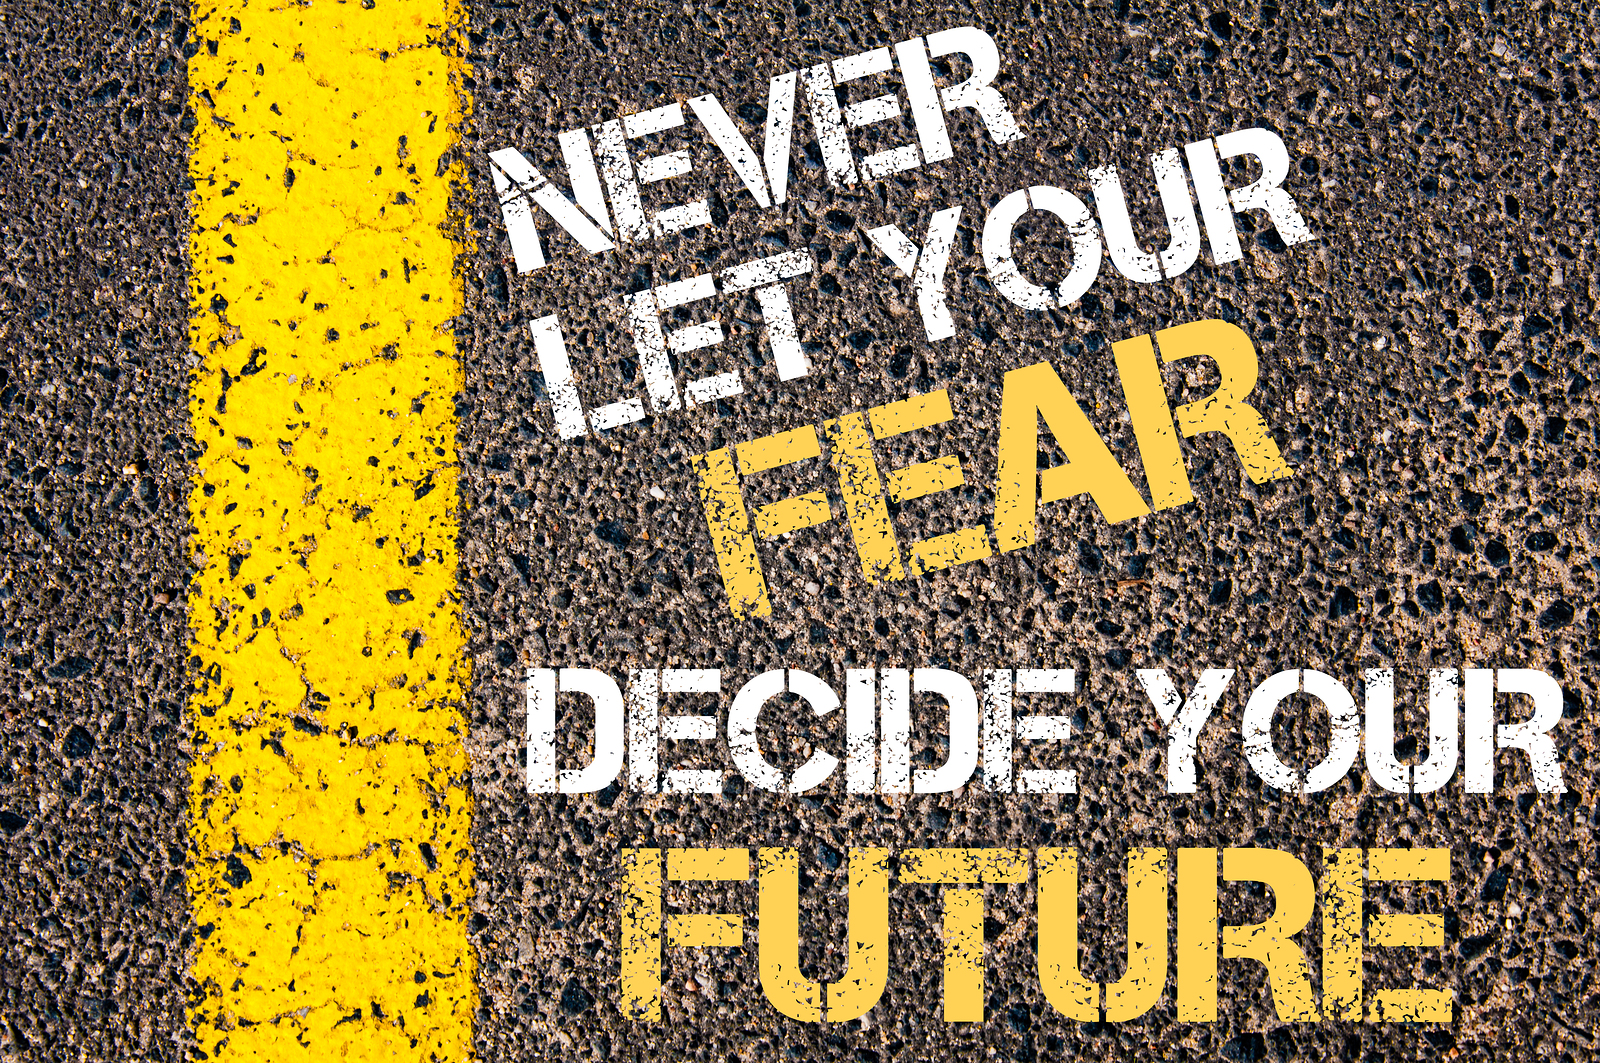 NEVER LET YOUR FEAR DECIDE YOUR FUTURE motivational quote. Yellow paint line on the road against asphalt background. Concept image